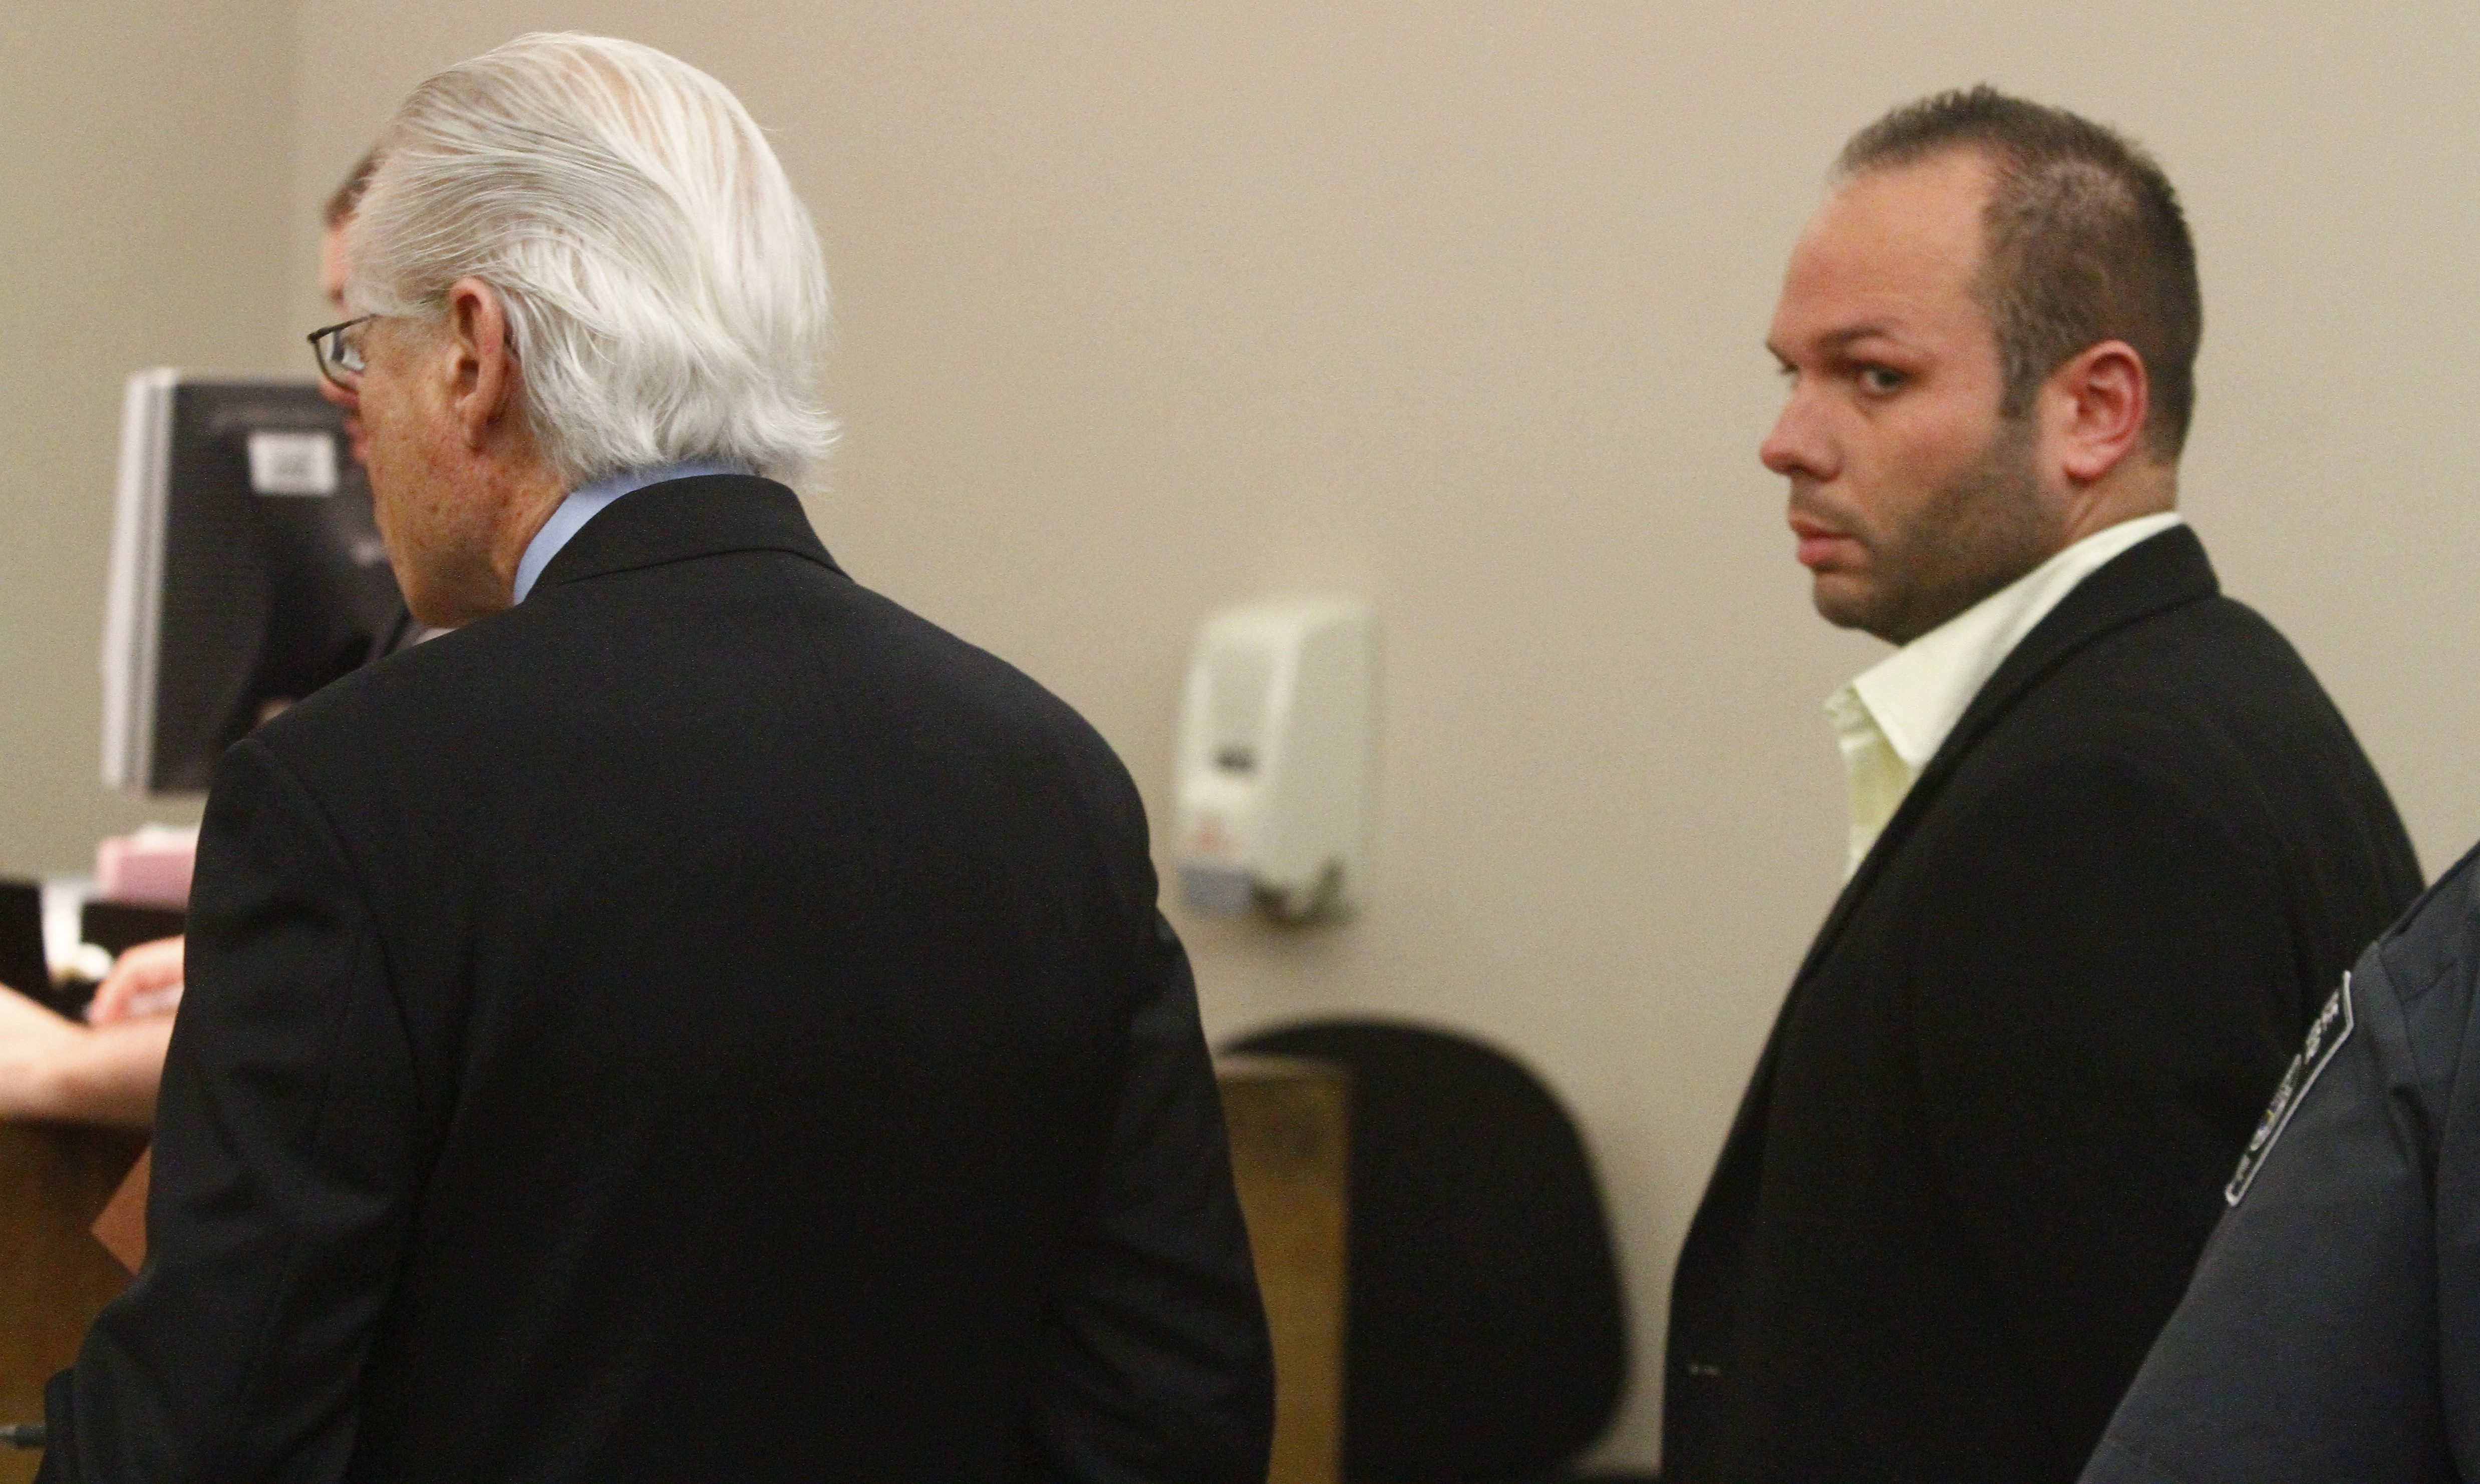 Jeffrey J. Basil, manager of Molly's Pub in University Heights, has six prior arrests and convictions, the most serious a felony conviction for attempted criminal possession of a controlled substance with intent to sell in 2003. He's seen here at his arraignment hearing Sunday in Buffalo City Court.